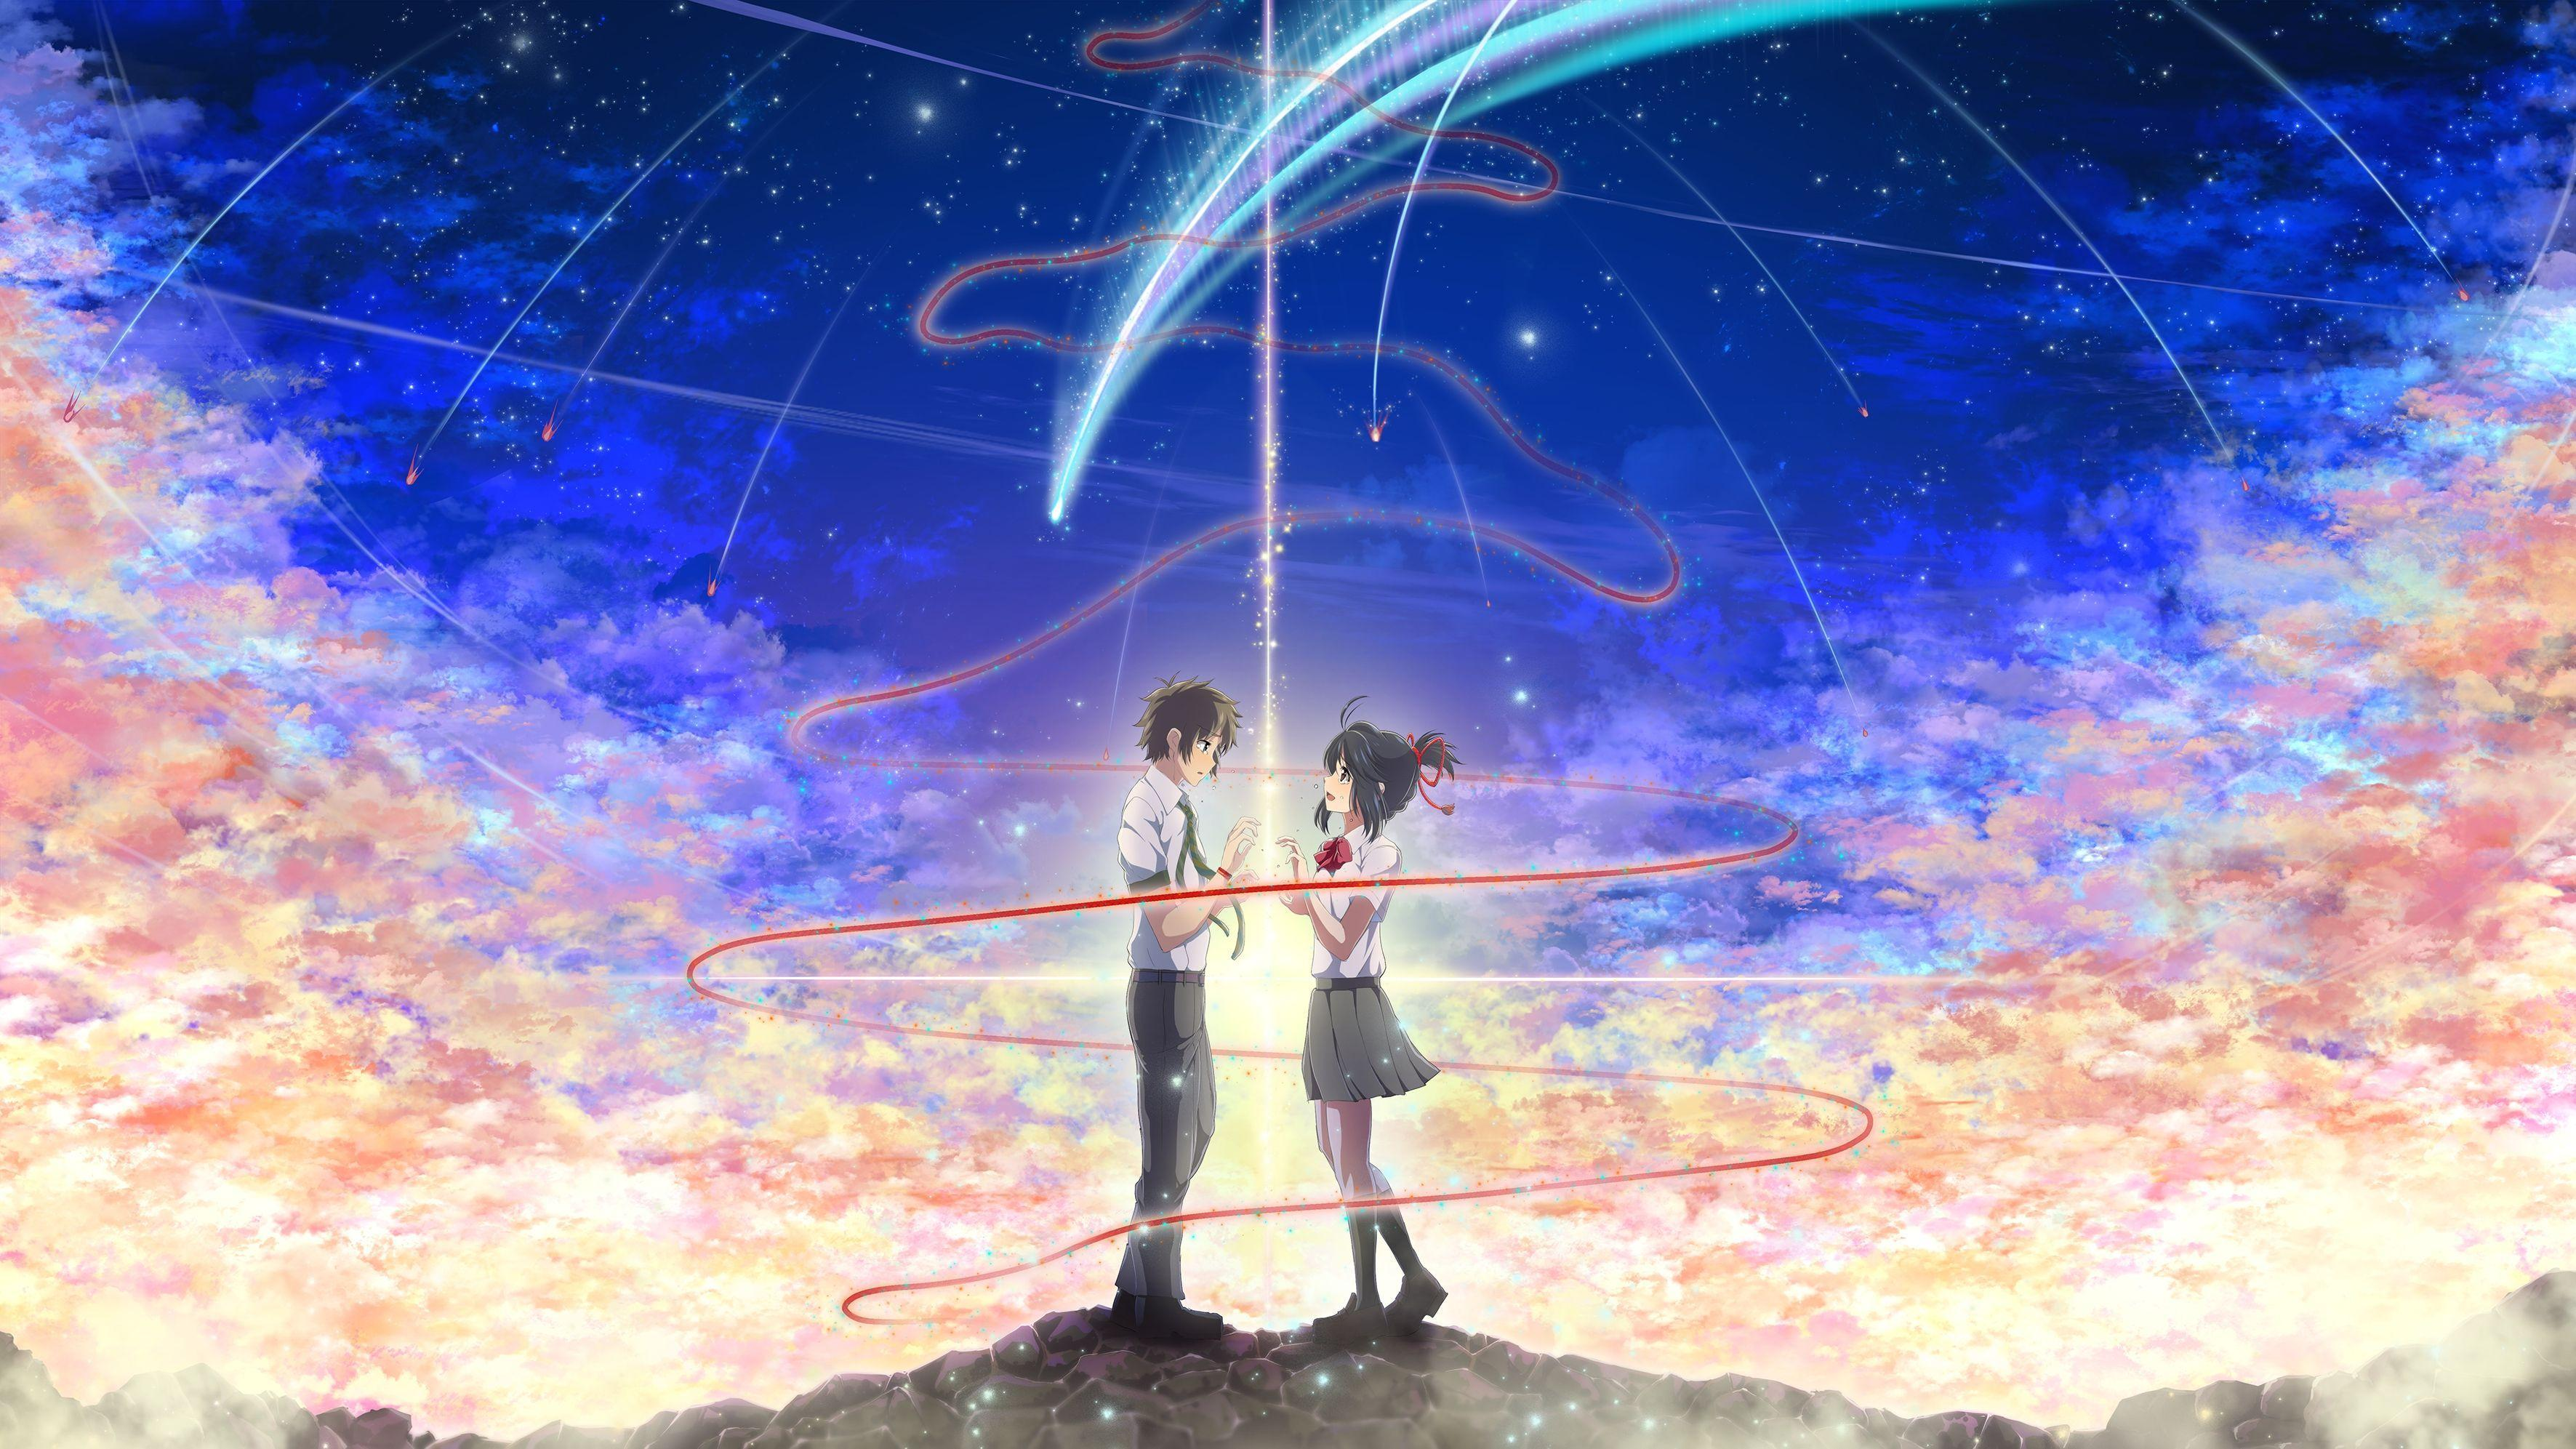 Kimi No Na Wa Hd Wallpapers Backgrounds Wallpaper Abyss